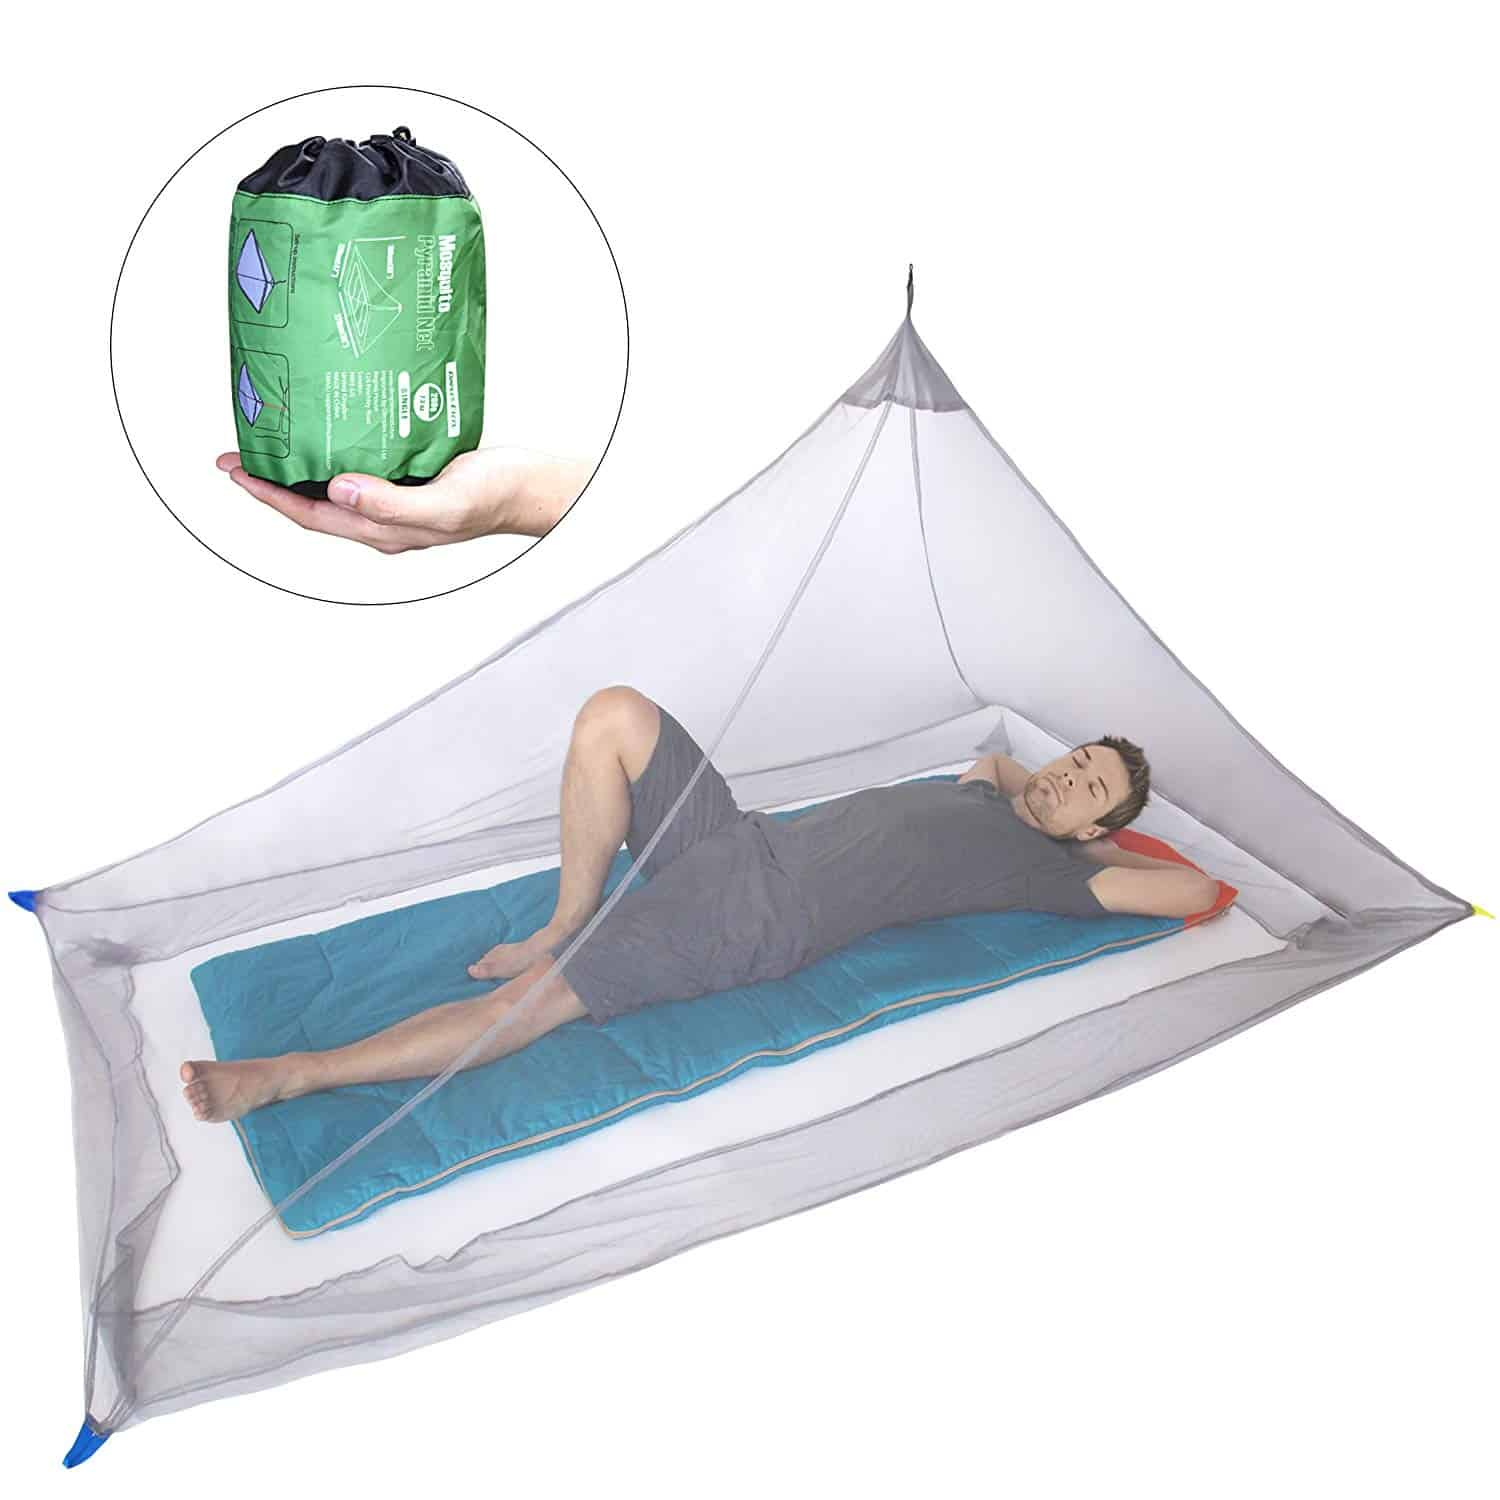 8 Best Travel Mosquito Nets For Backpackers 2019 Comparison